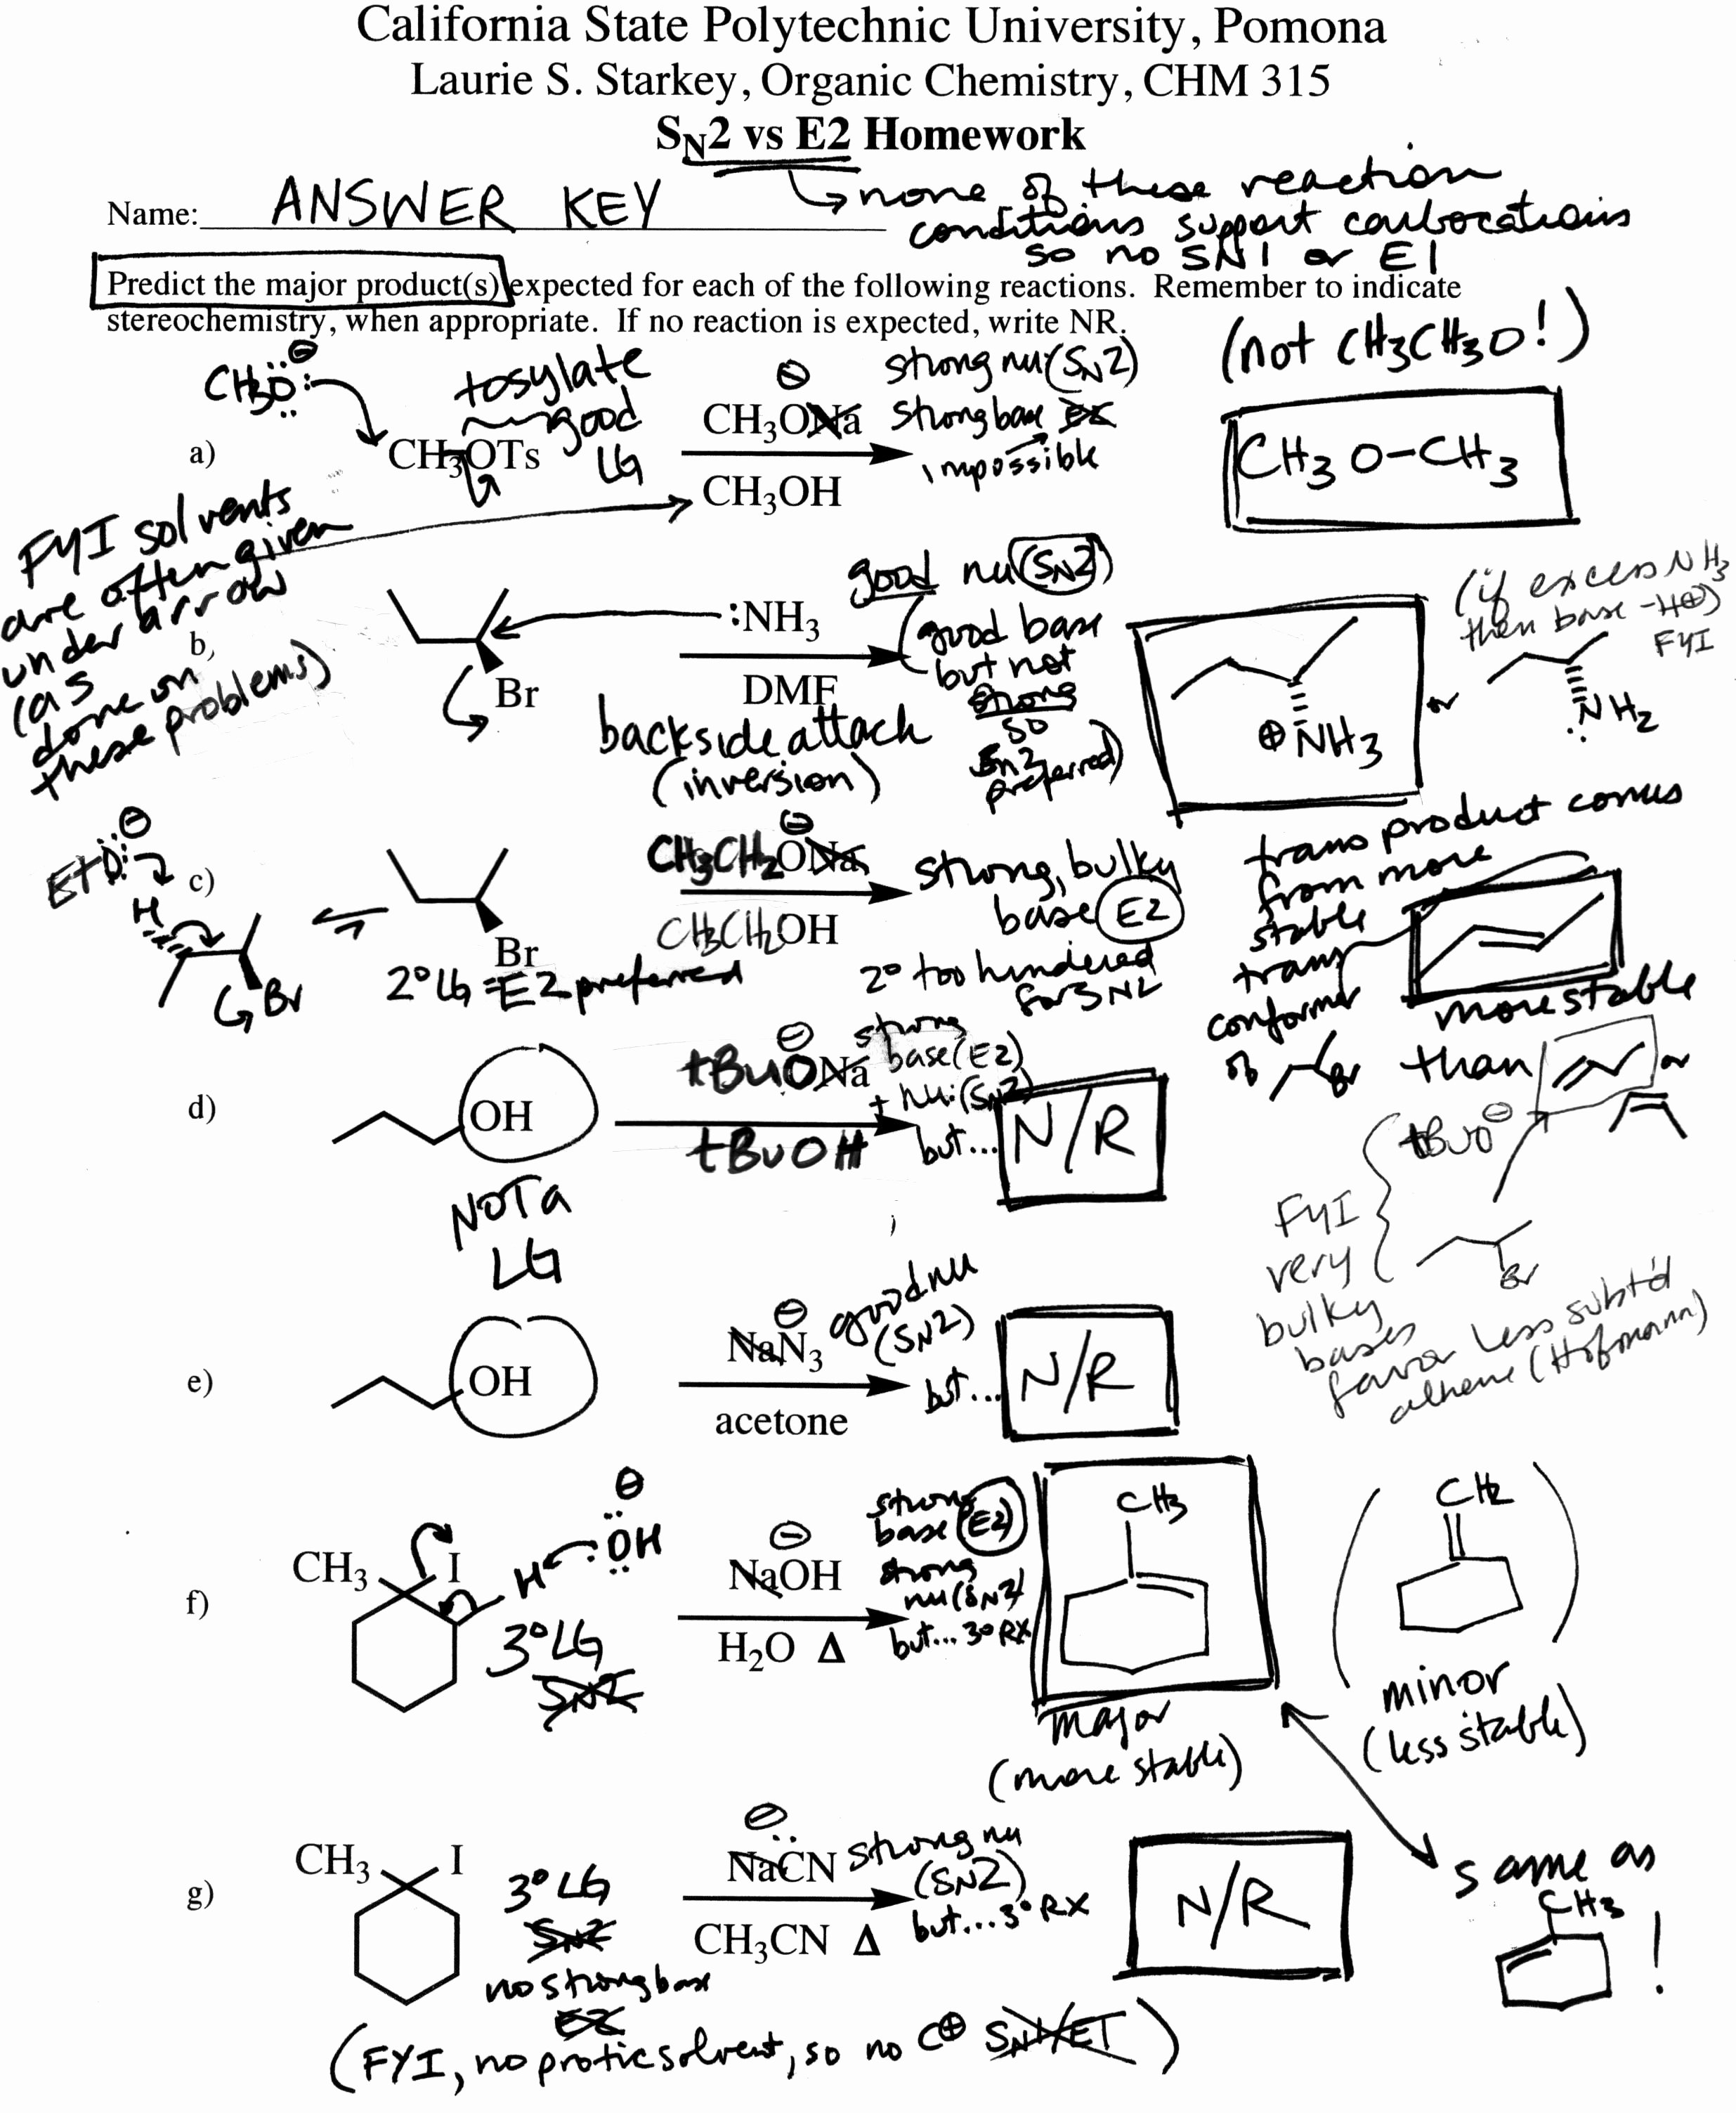 Organic Chemistry Worksheet with Answers Best Of Dr Starkey S Chm 315 organic Chemistry